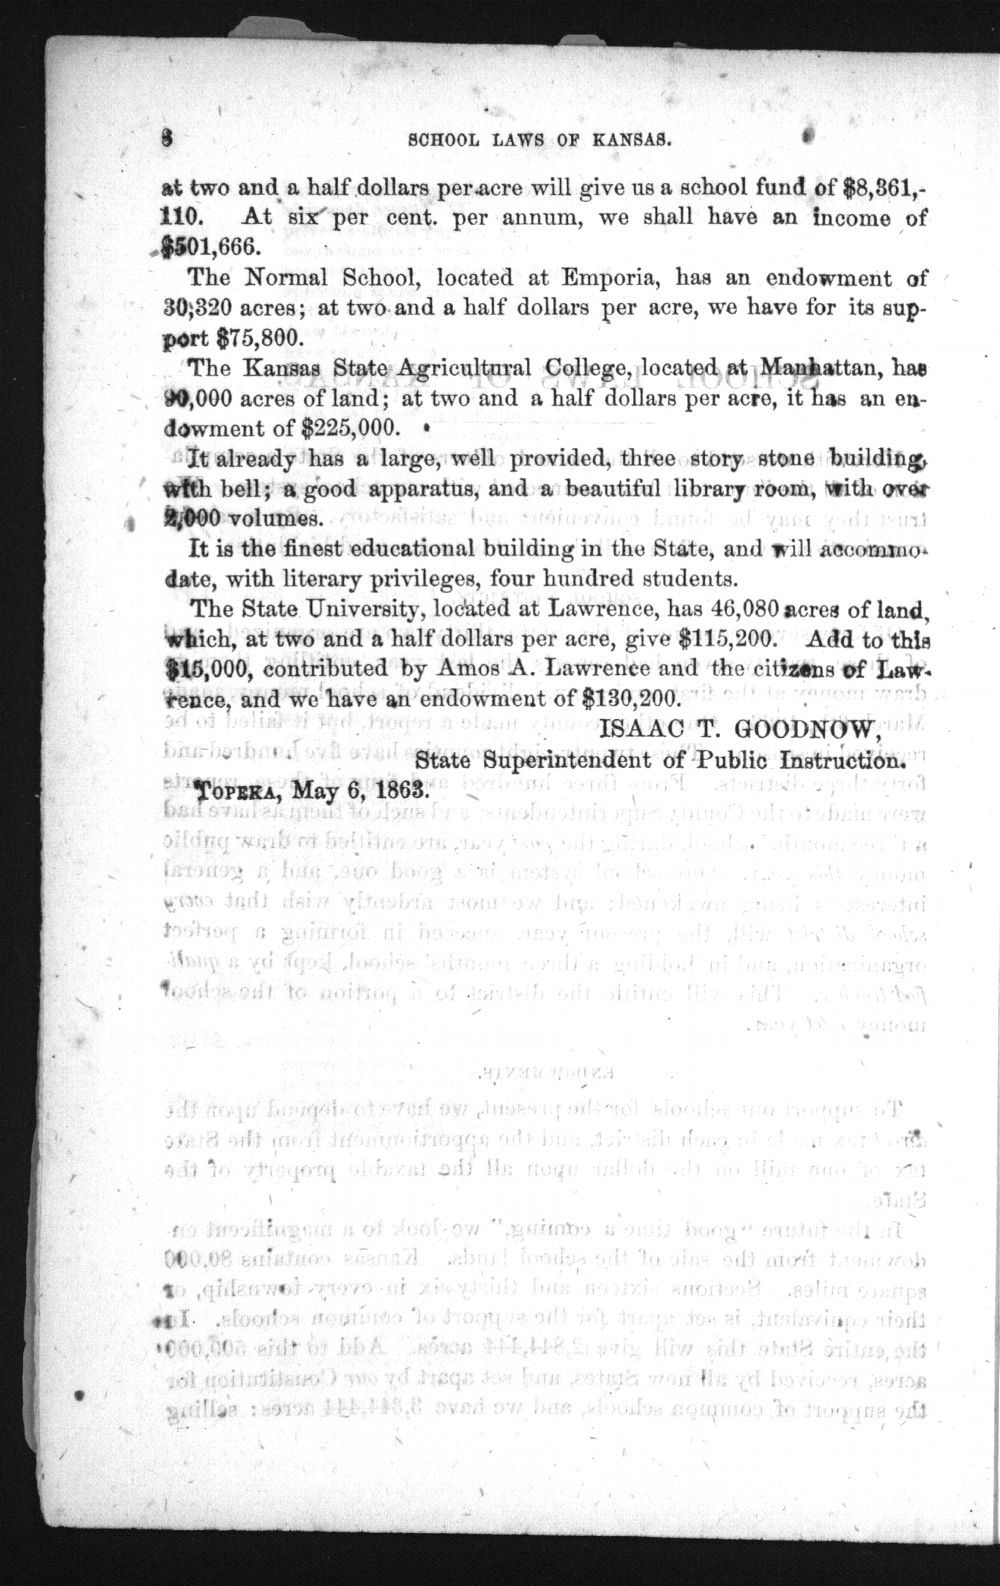 Laws and forms relating to common schools in the state of Kansas - 8